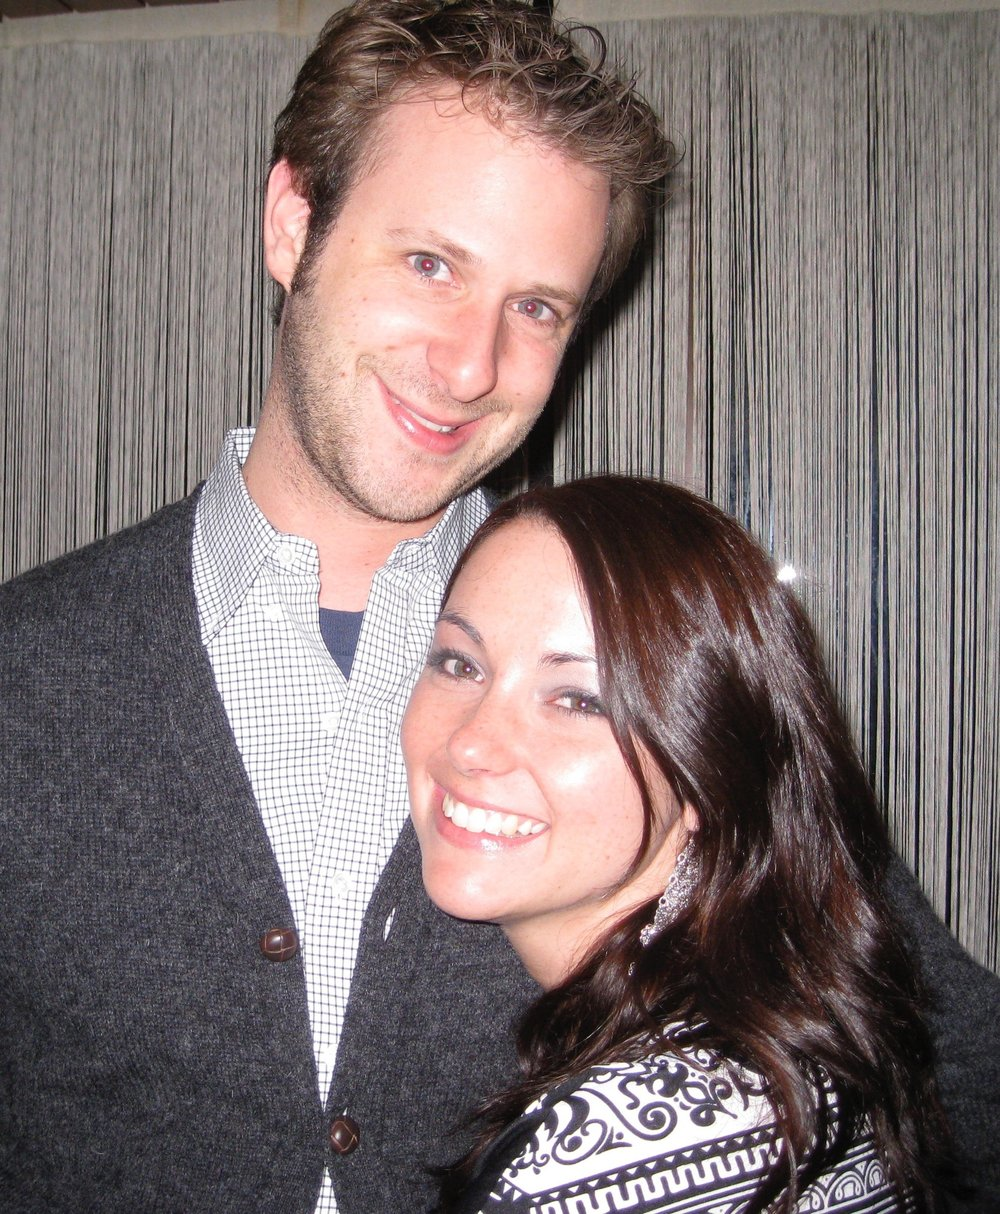 The early days….circa 2008, about a year after we started dating. We were at Layl'a Rul, anyone remember that place????